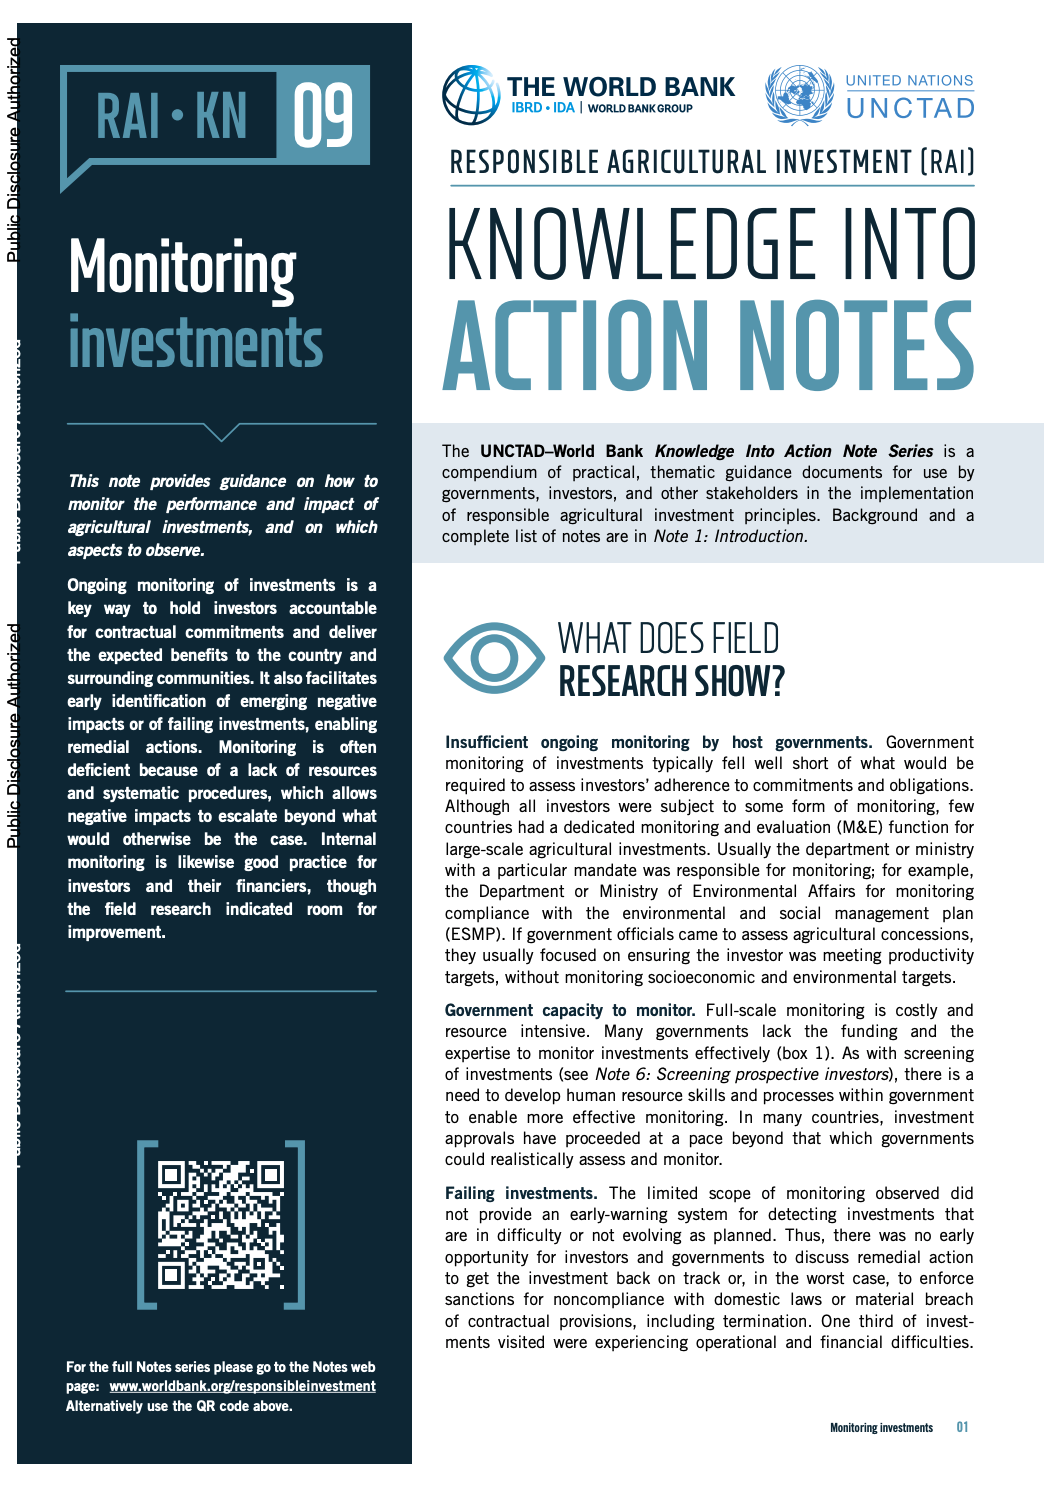 Responsible Agricultural Investment (RAI): Knowledge into Action Notes series - 9 - Monitoring investments cover image